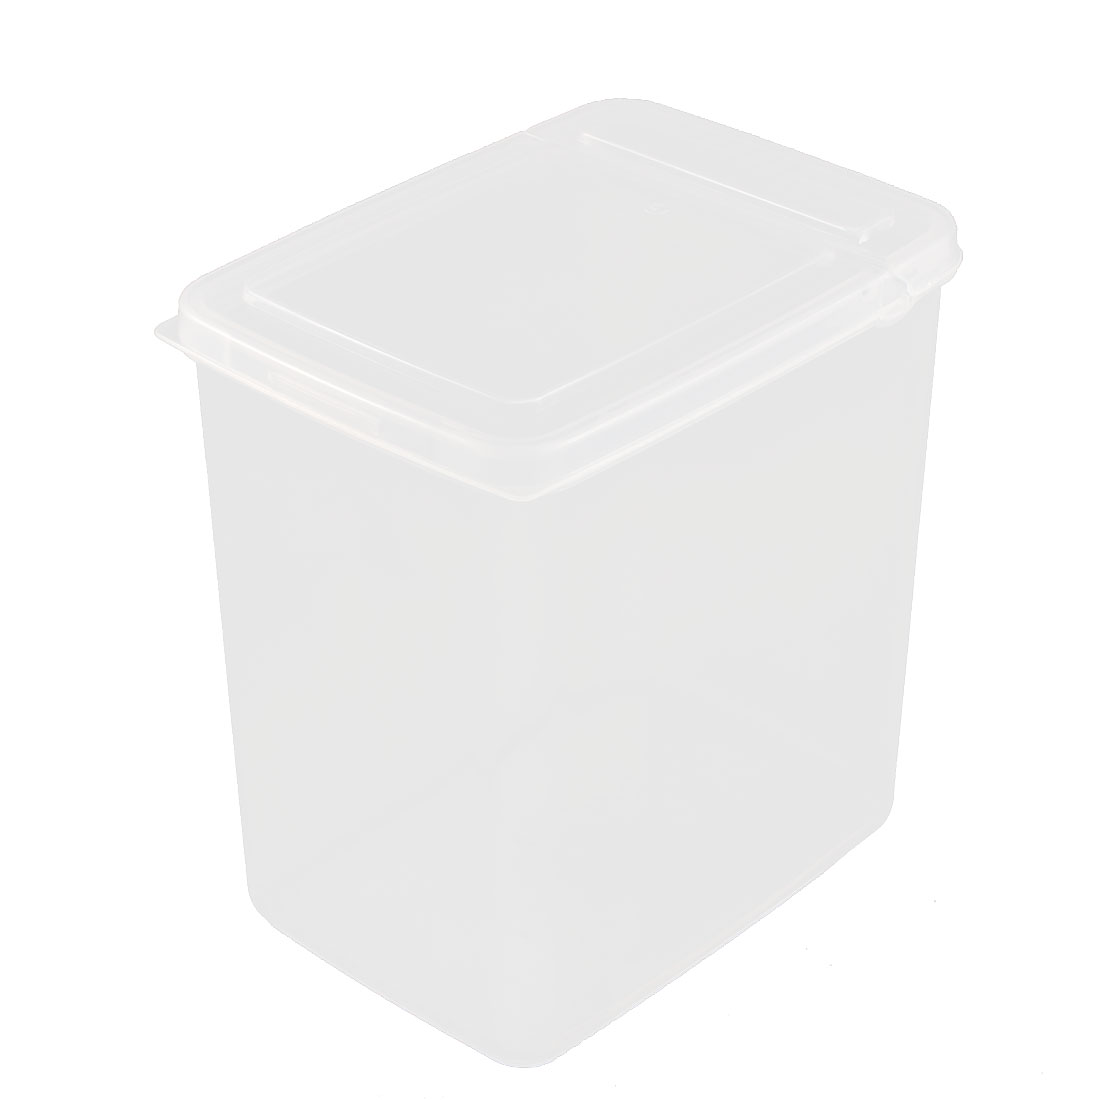 Home Plastic Food Storage Box Container 15cm x 11cm x 16cm 2L Clear